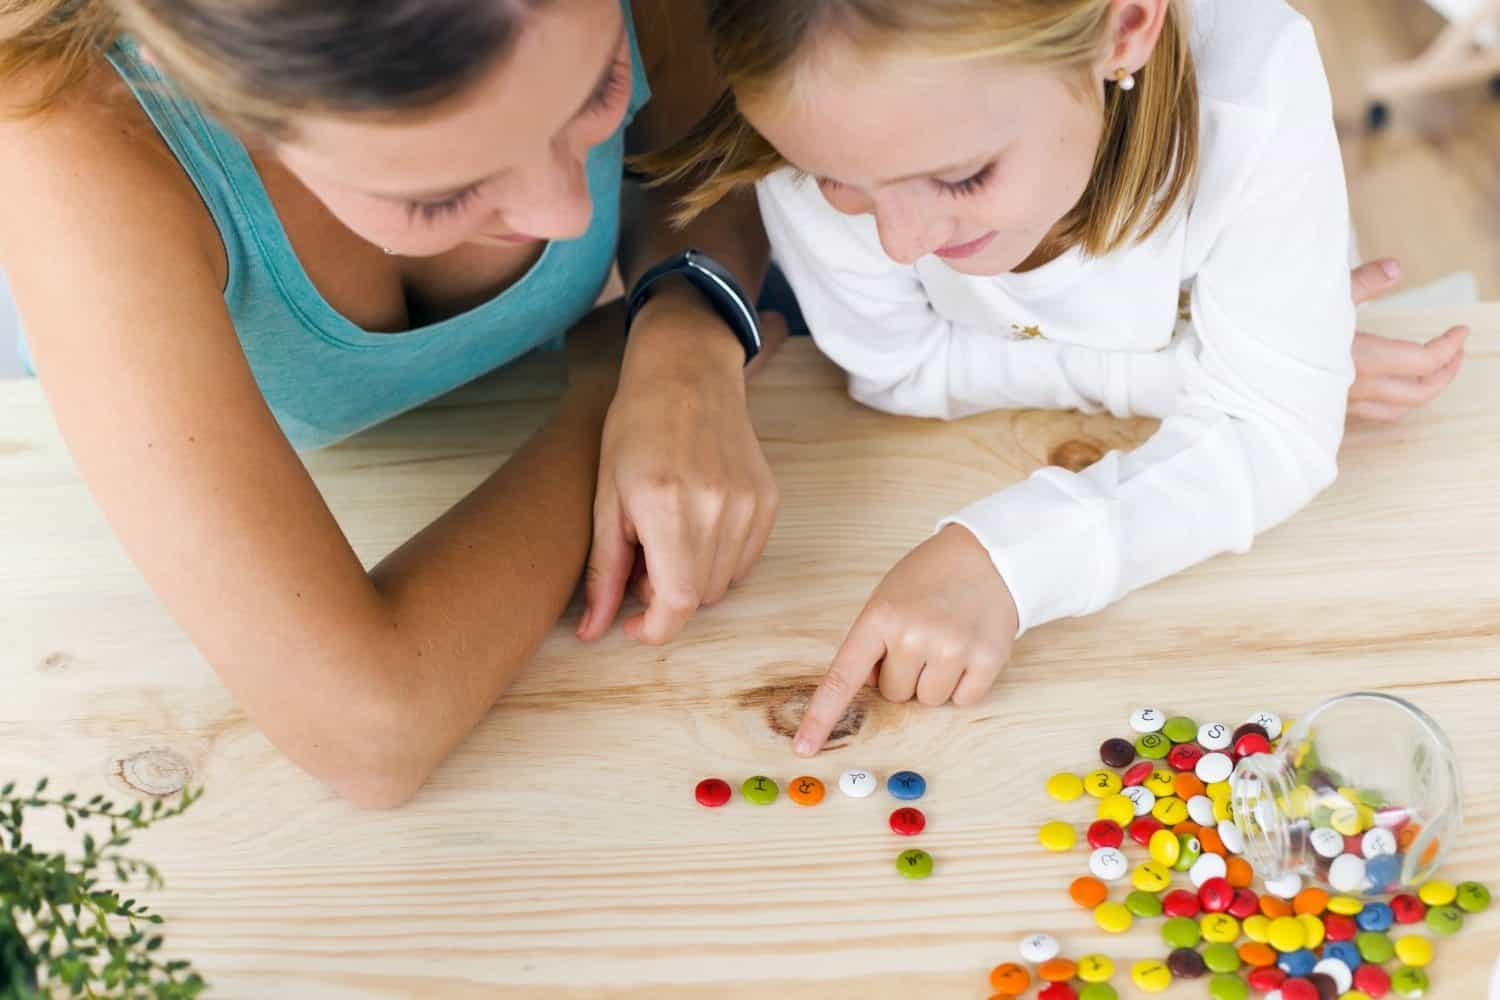 Mother and daughter learning together with counting beans